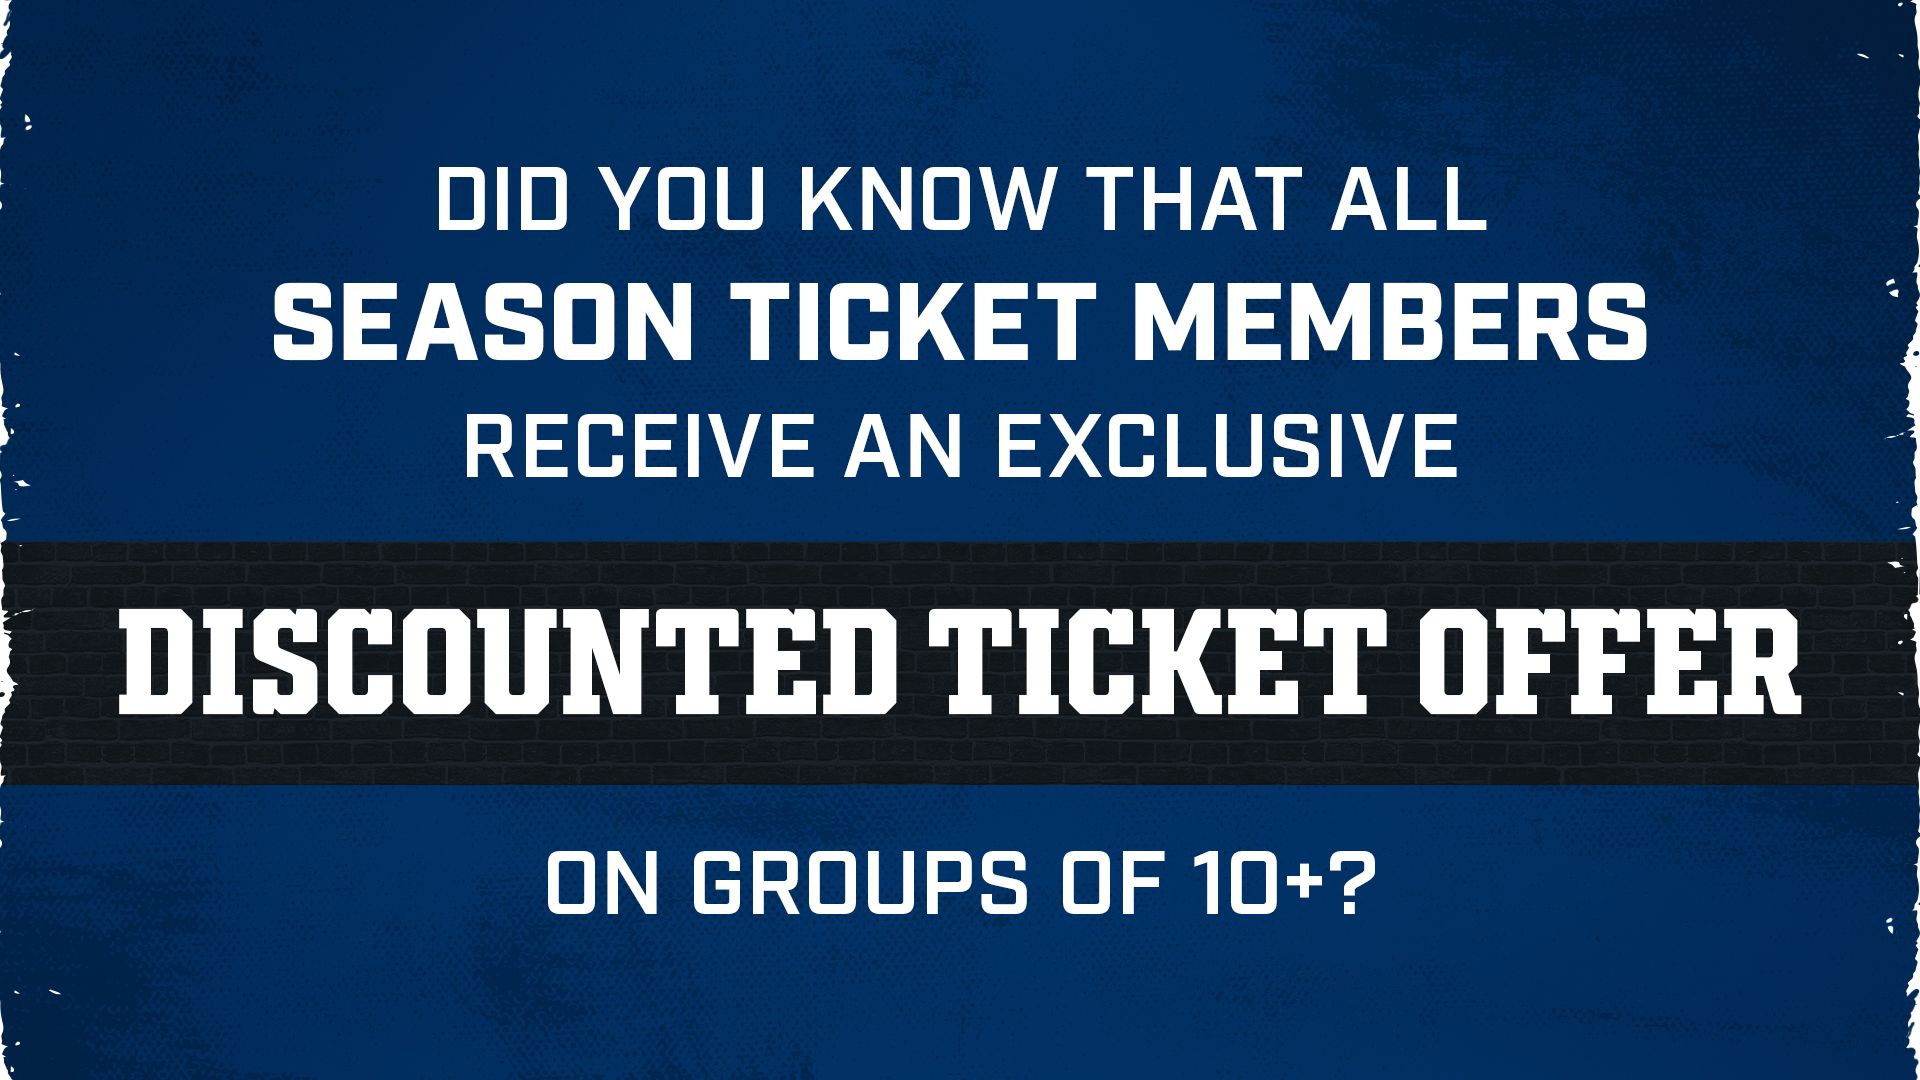 Indianapolis Colts Season Tickets  Did you know that all season ticket members receive an exclusive discounted ticket offer of groups of 10+?